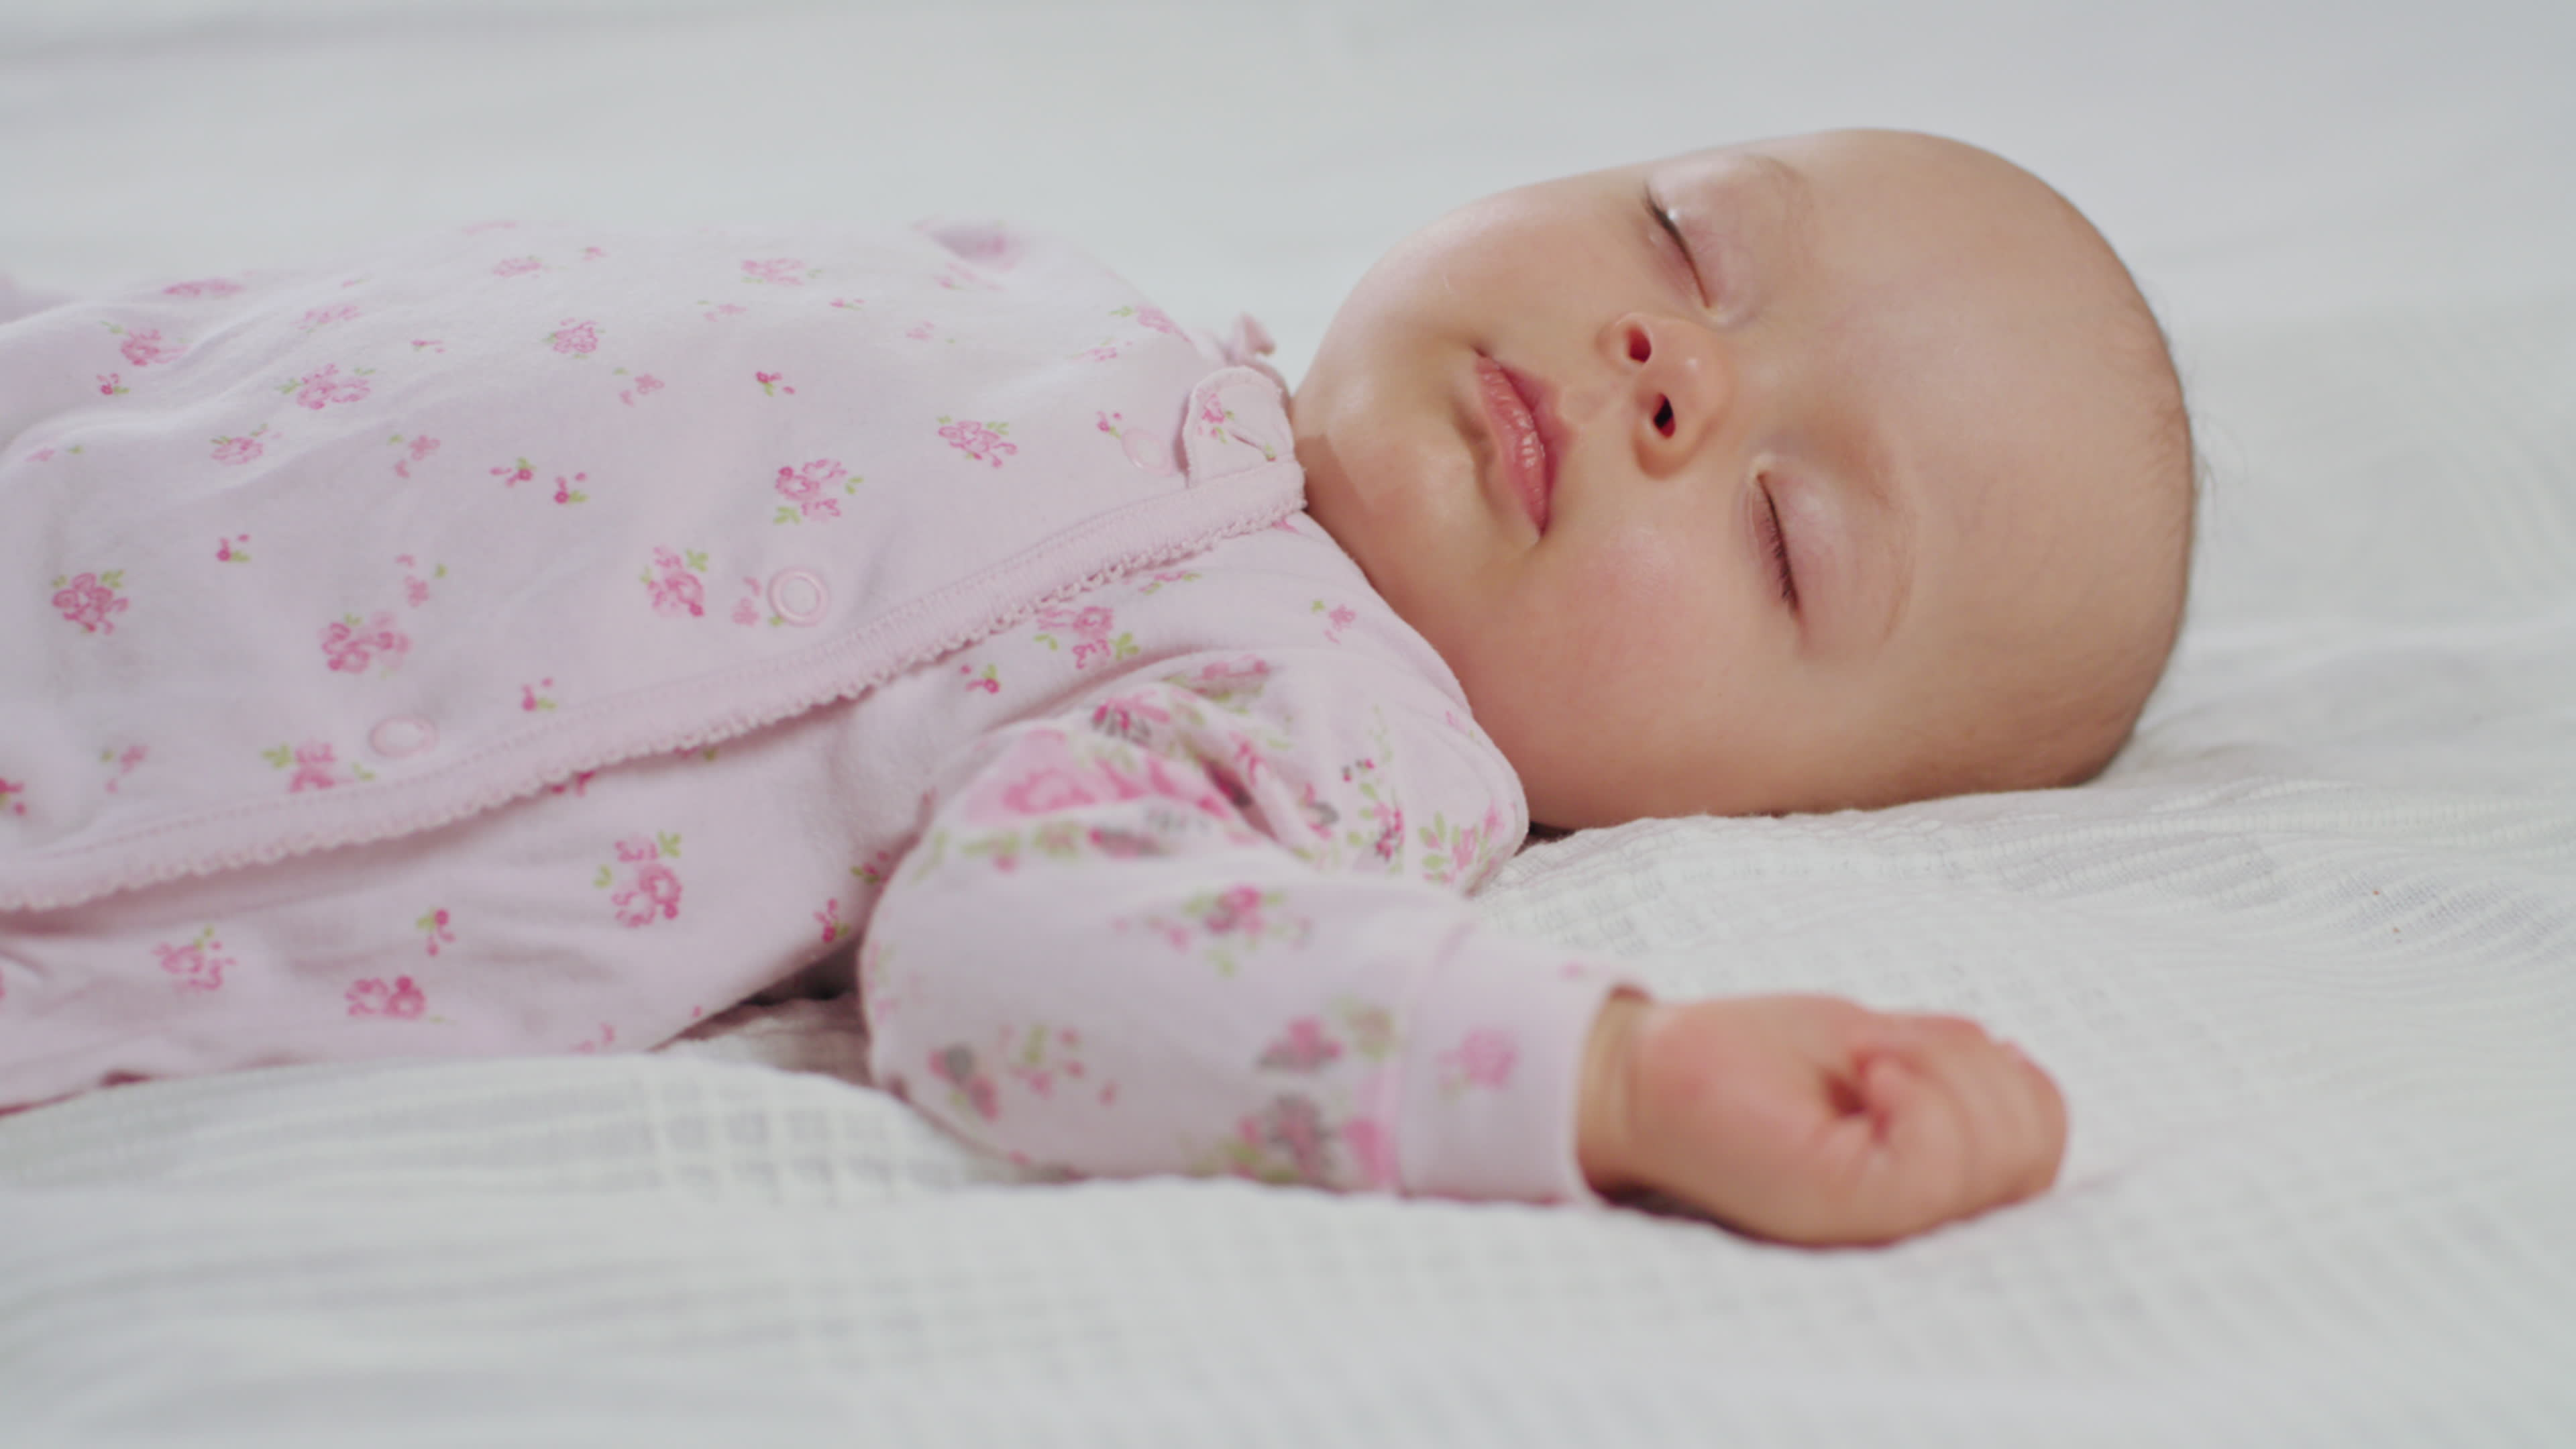 Pictures of a baby sleeping